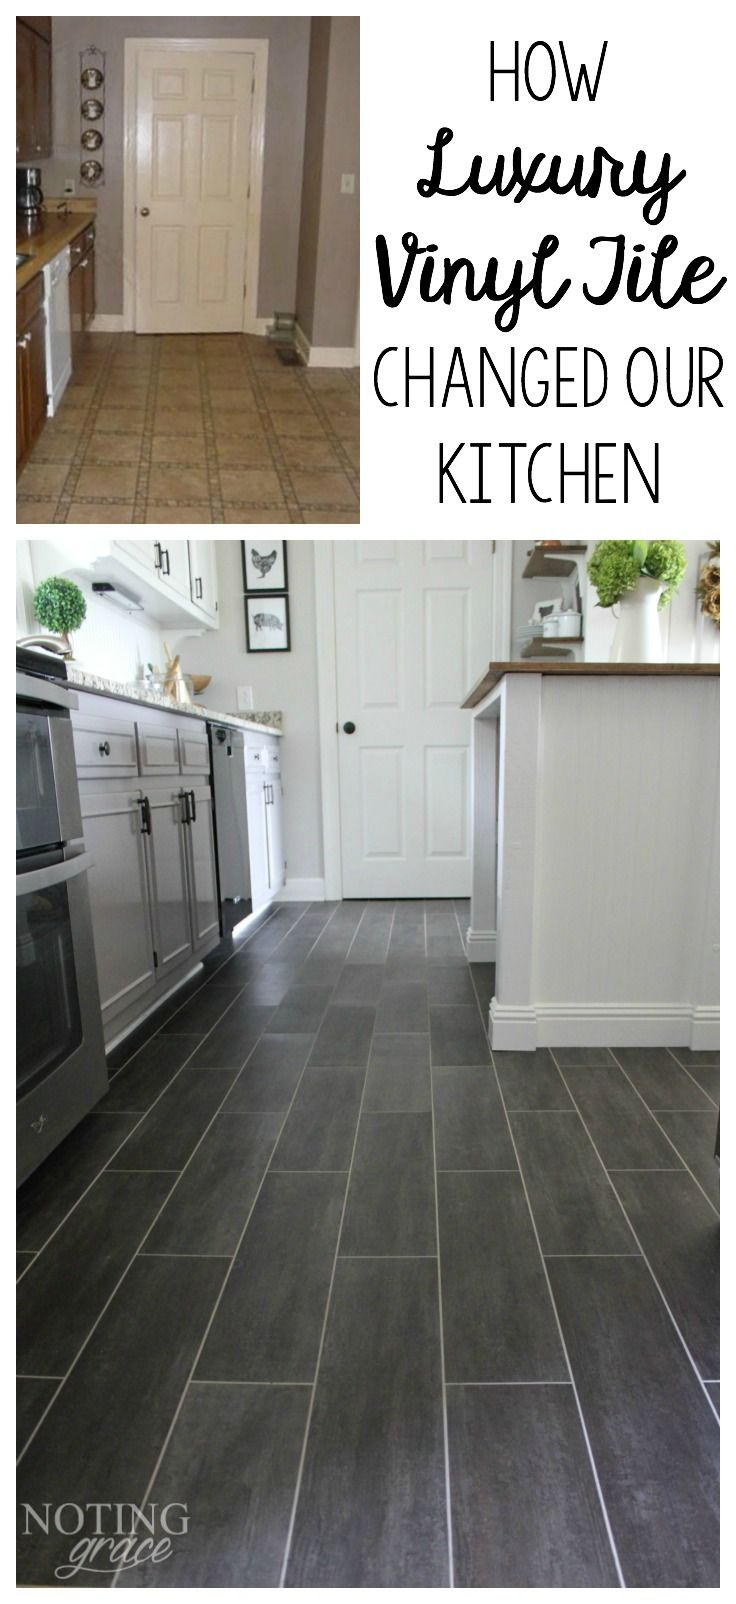 17 Best Ideas About Kitchen Flooring On Pinterest Kitchen Floors